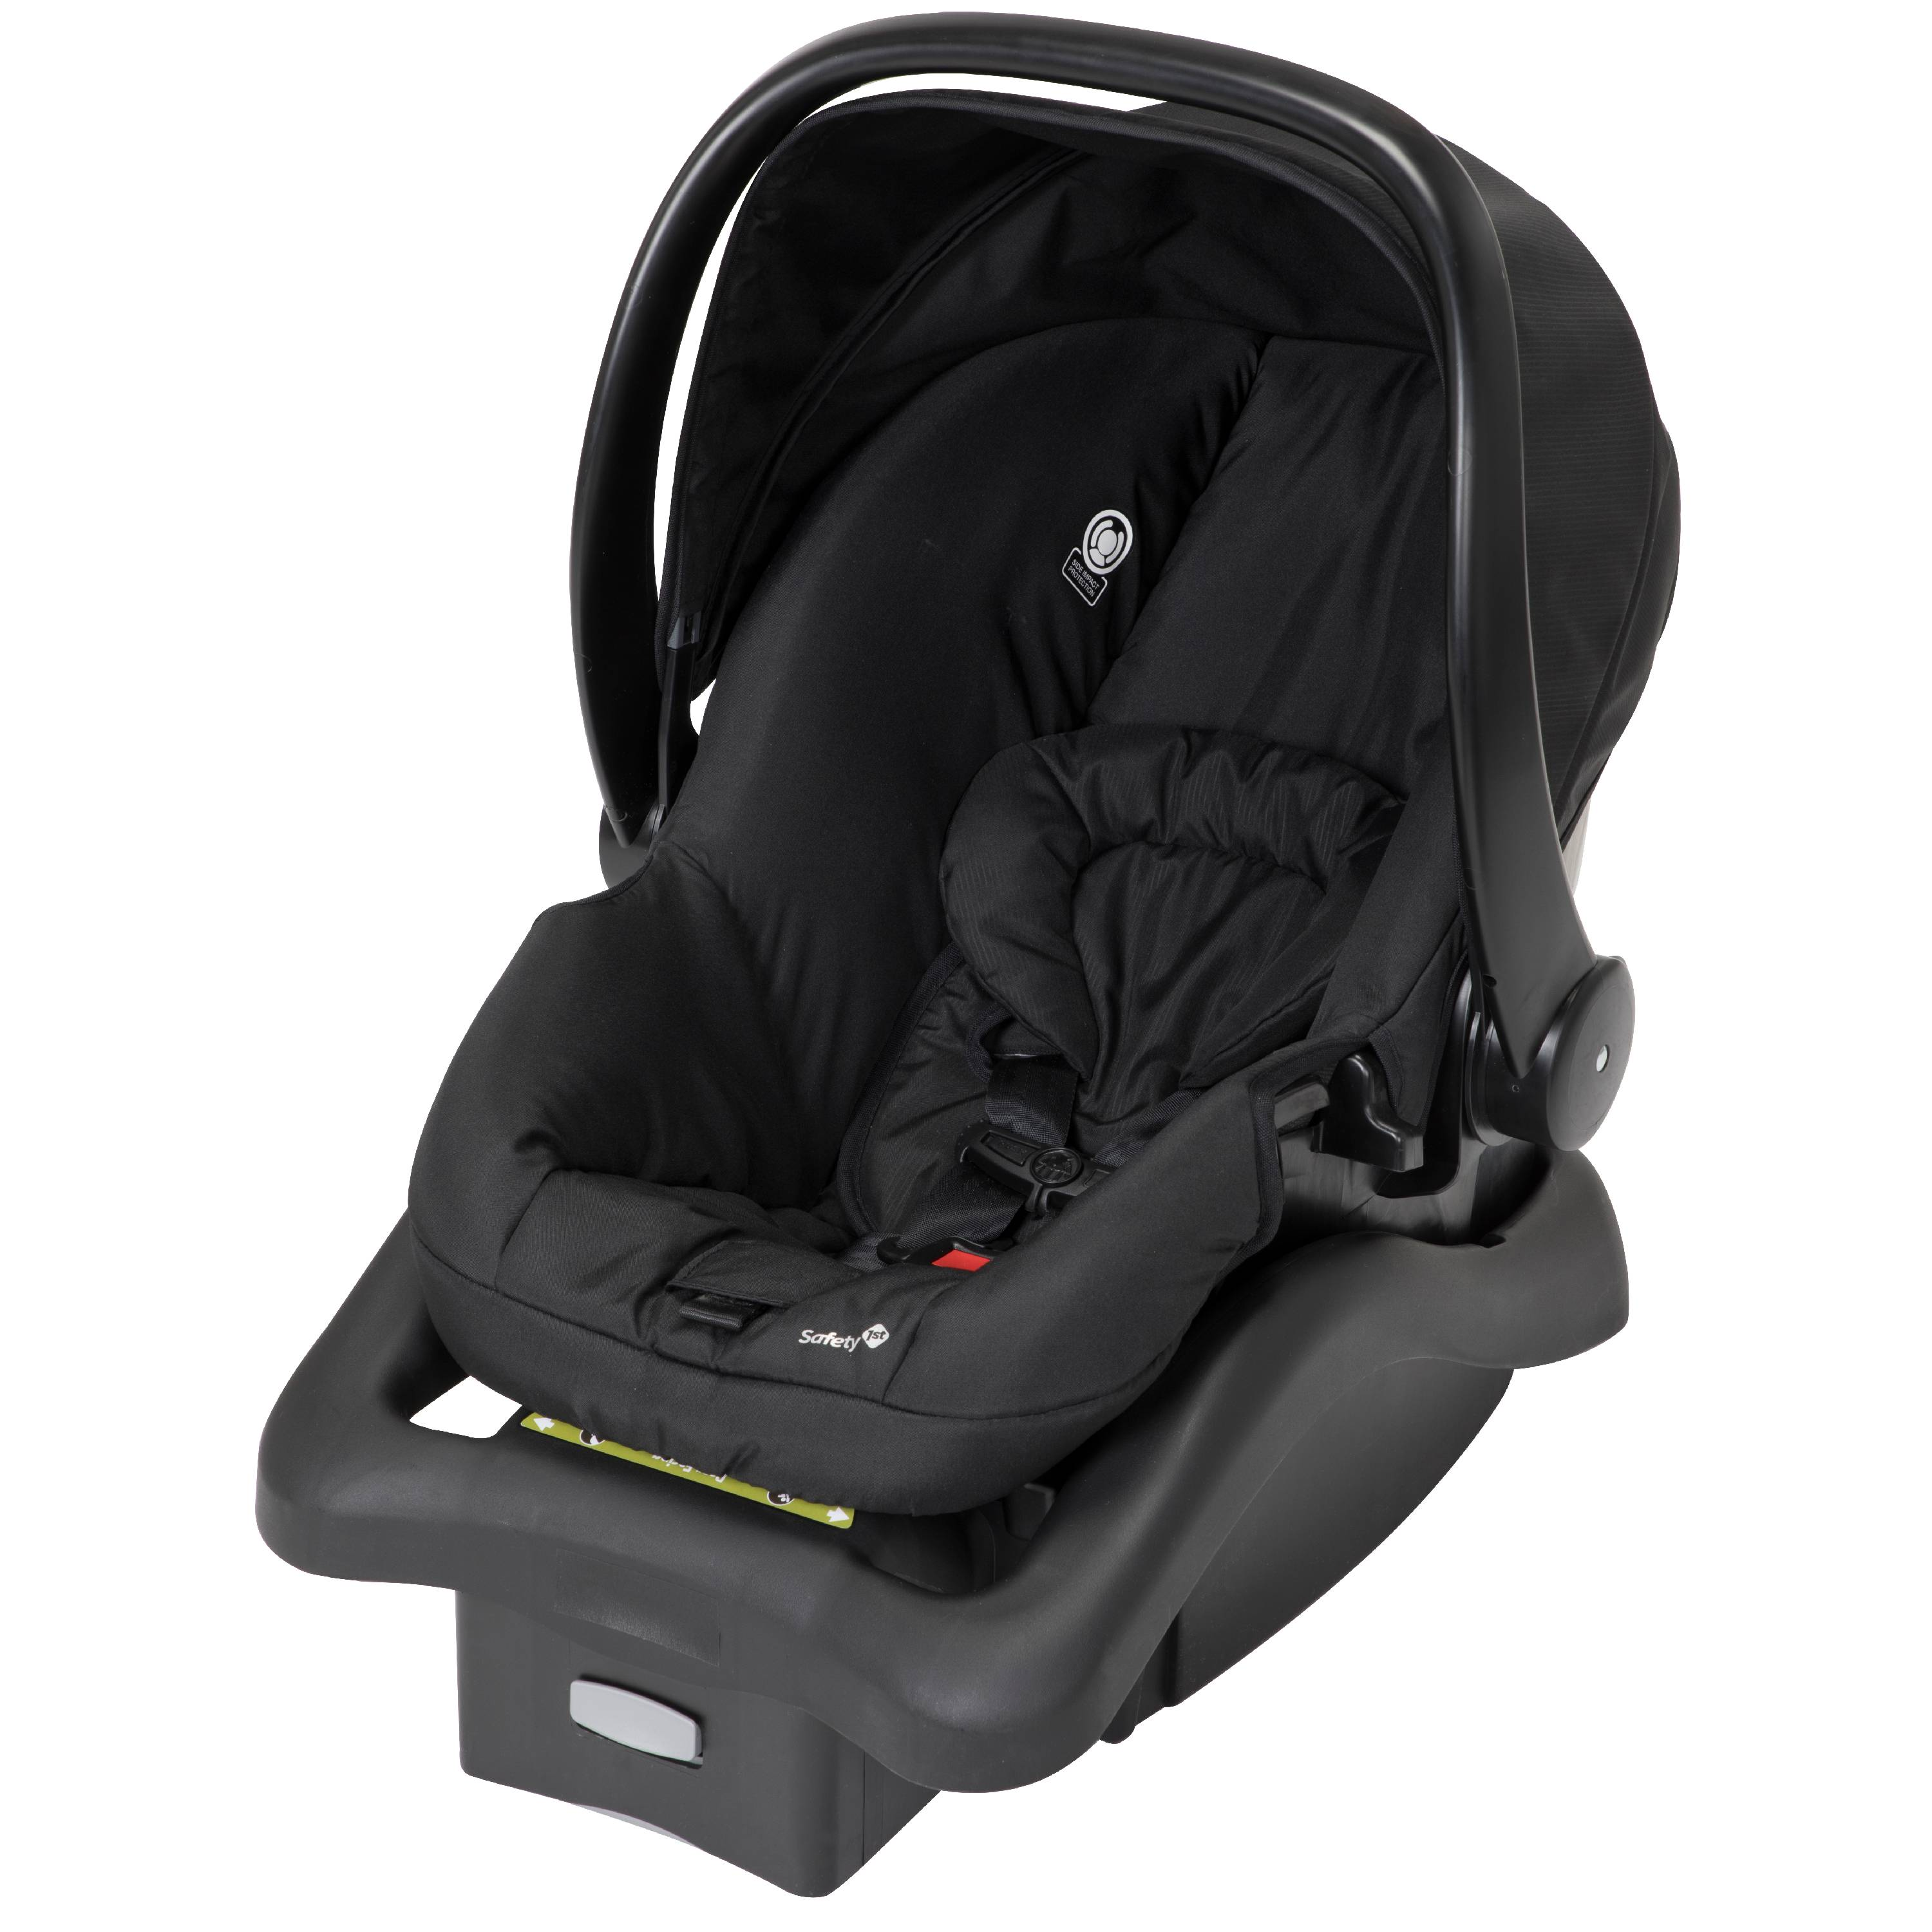 6b8568f74 Safety 1st RIVA Ultra Lightweight Travel System Stroller with onBoard35 FLX  infant Car Seat, Black Tie - Walmart.com